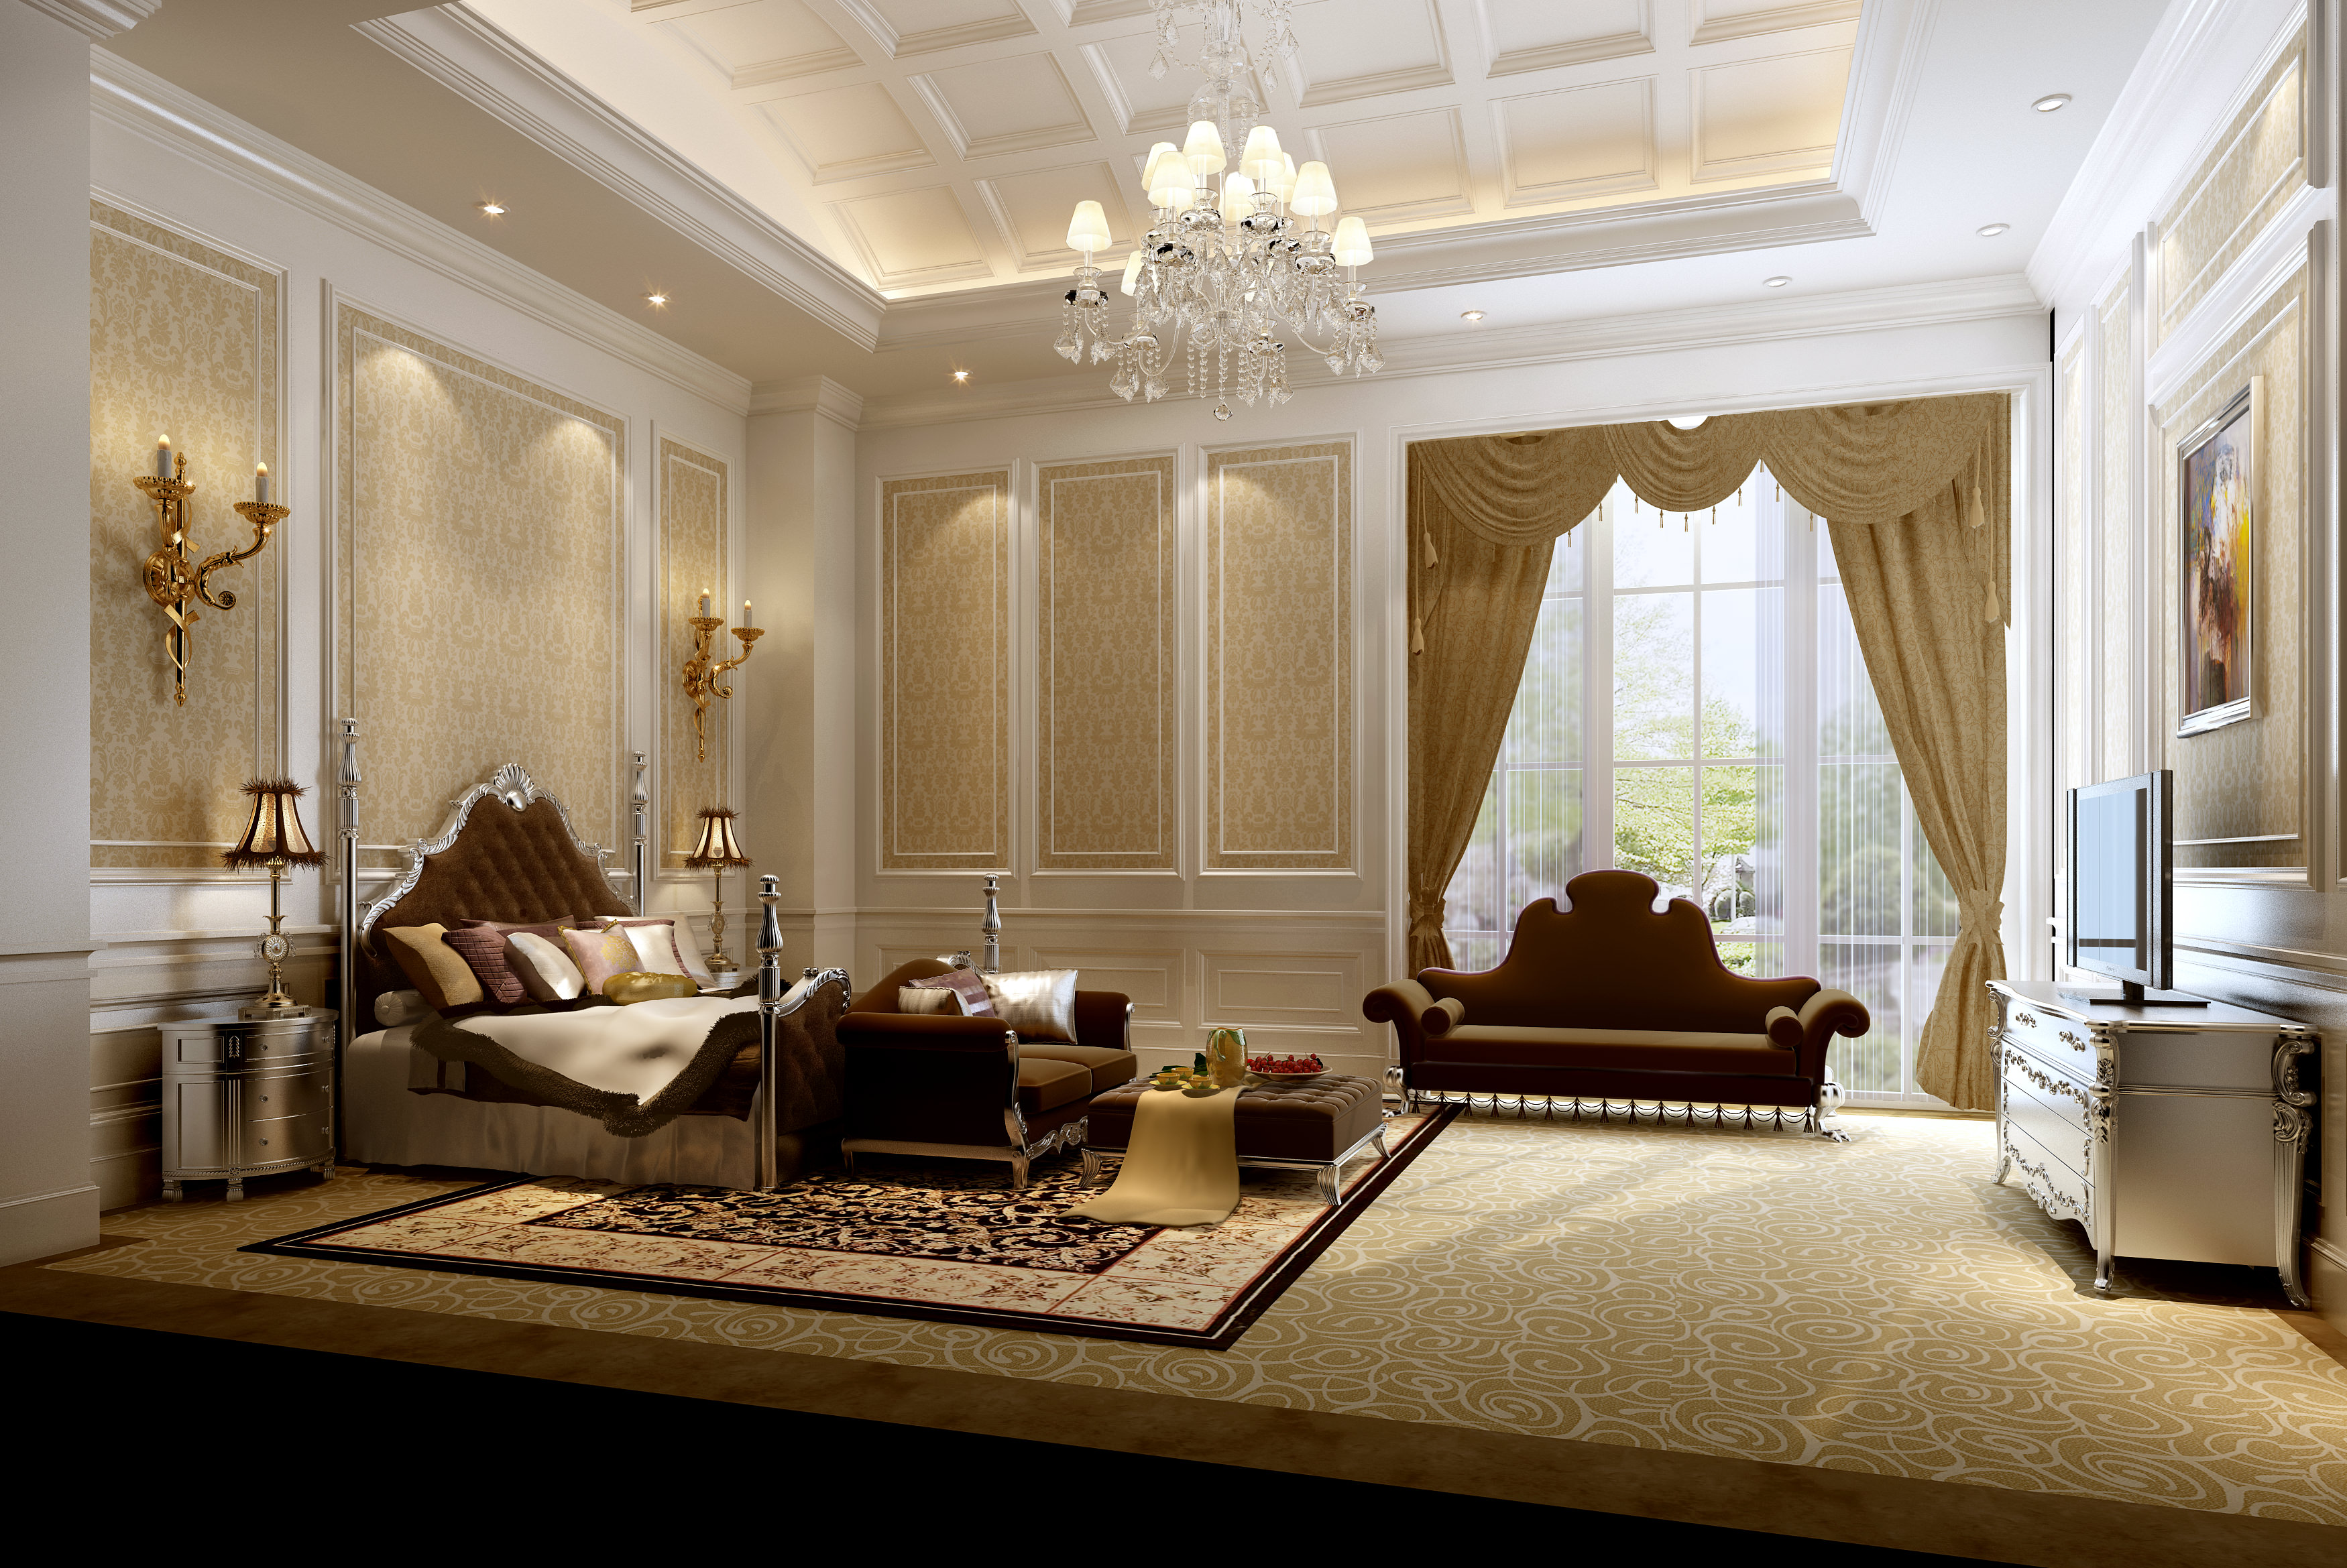 Very luxury bedroom 3d model max for Pics of luxury bedrooms